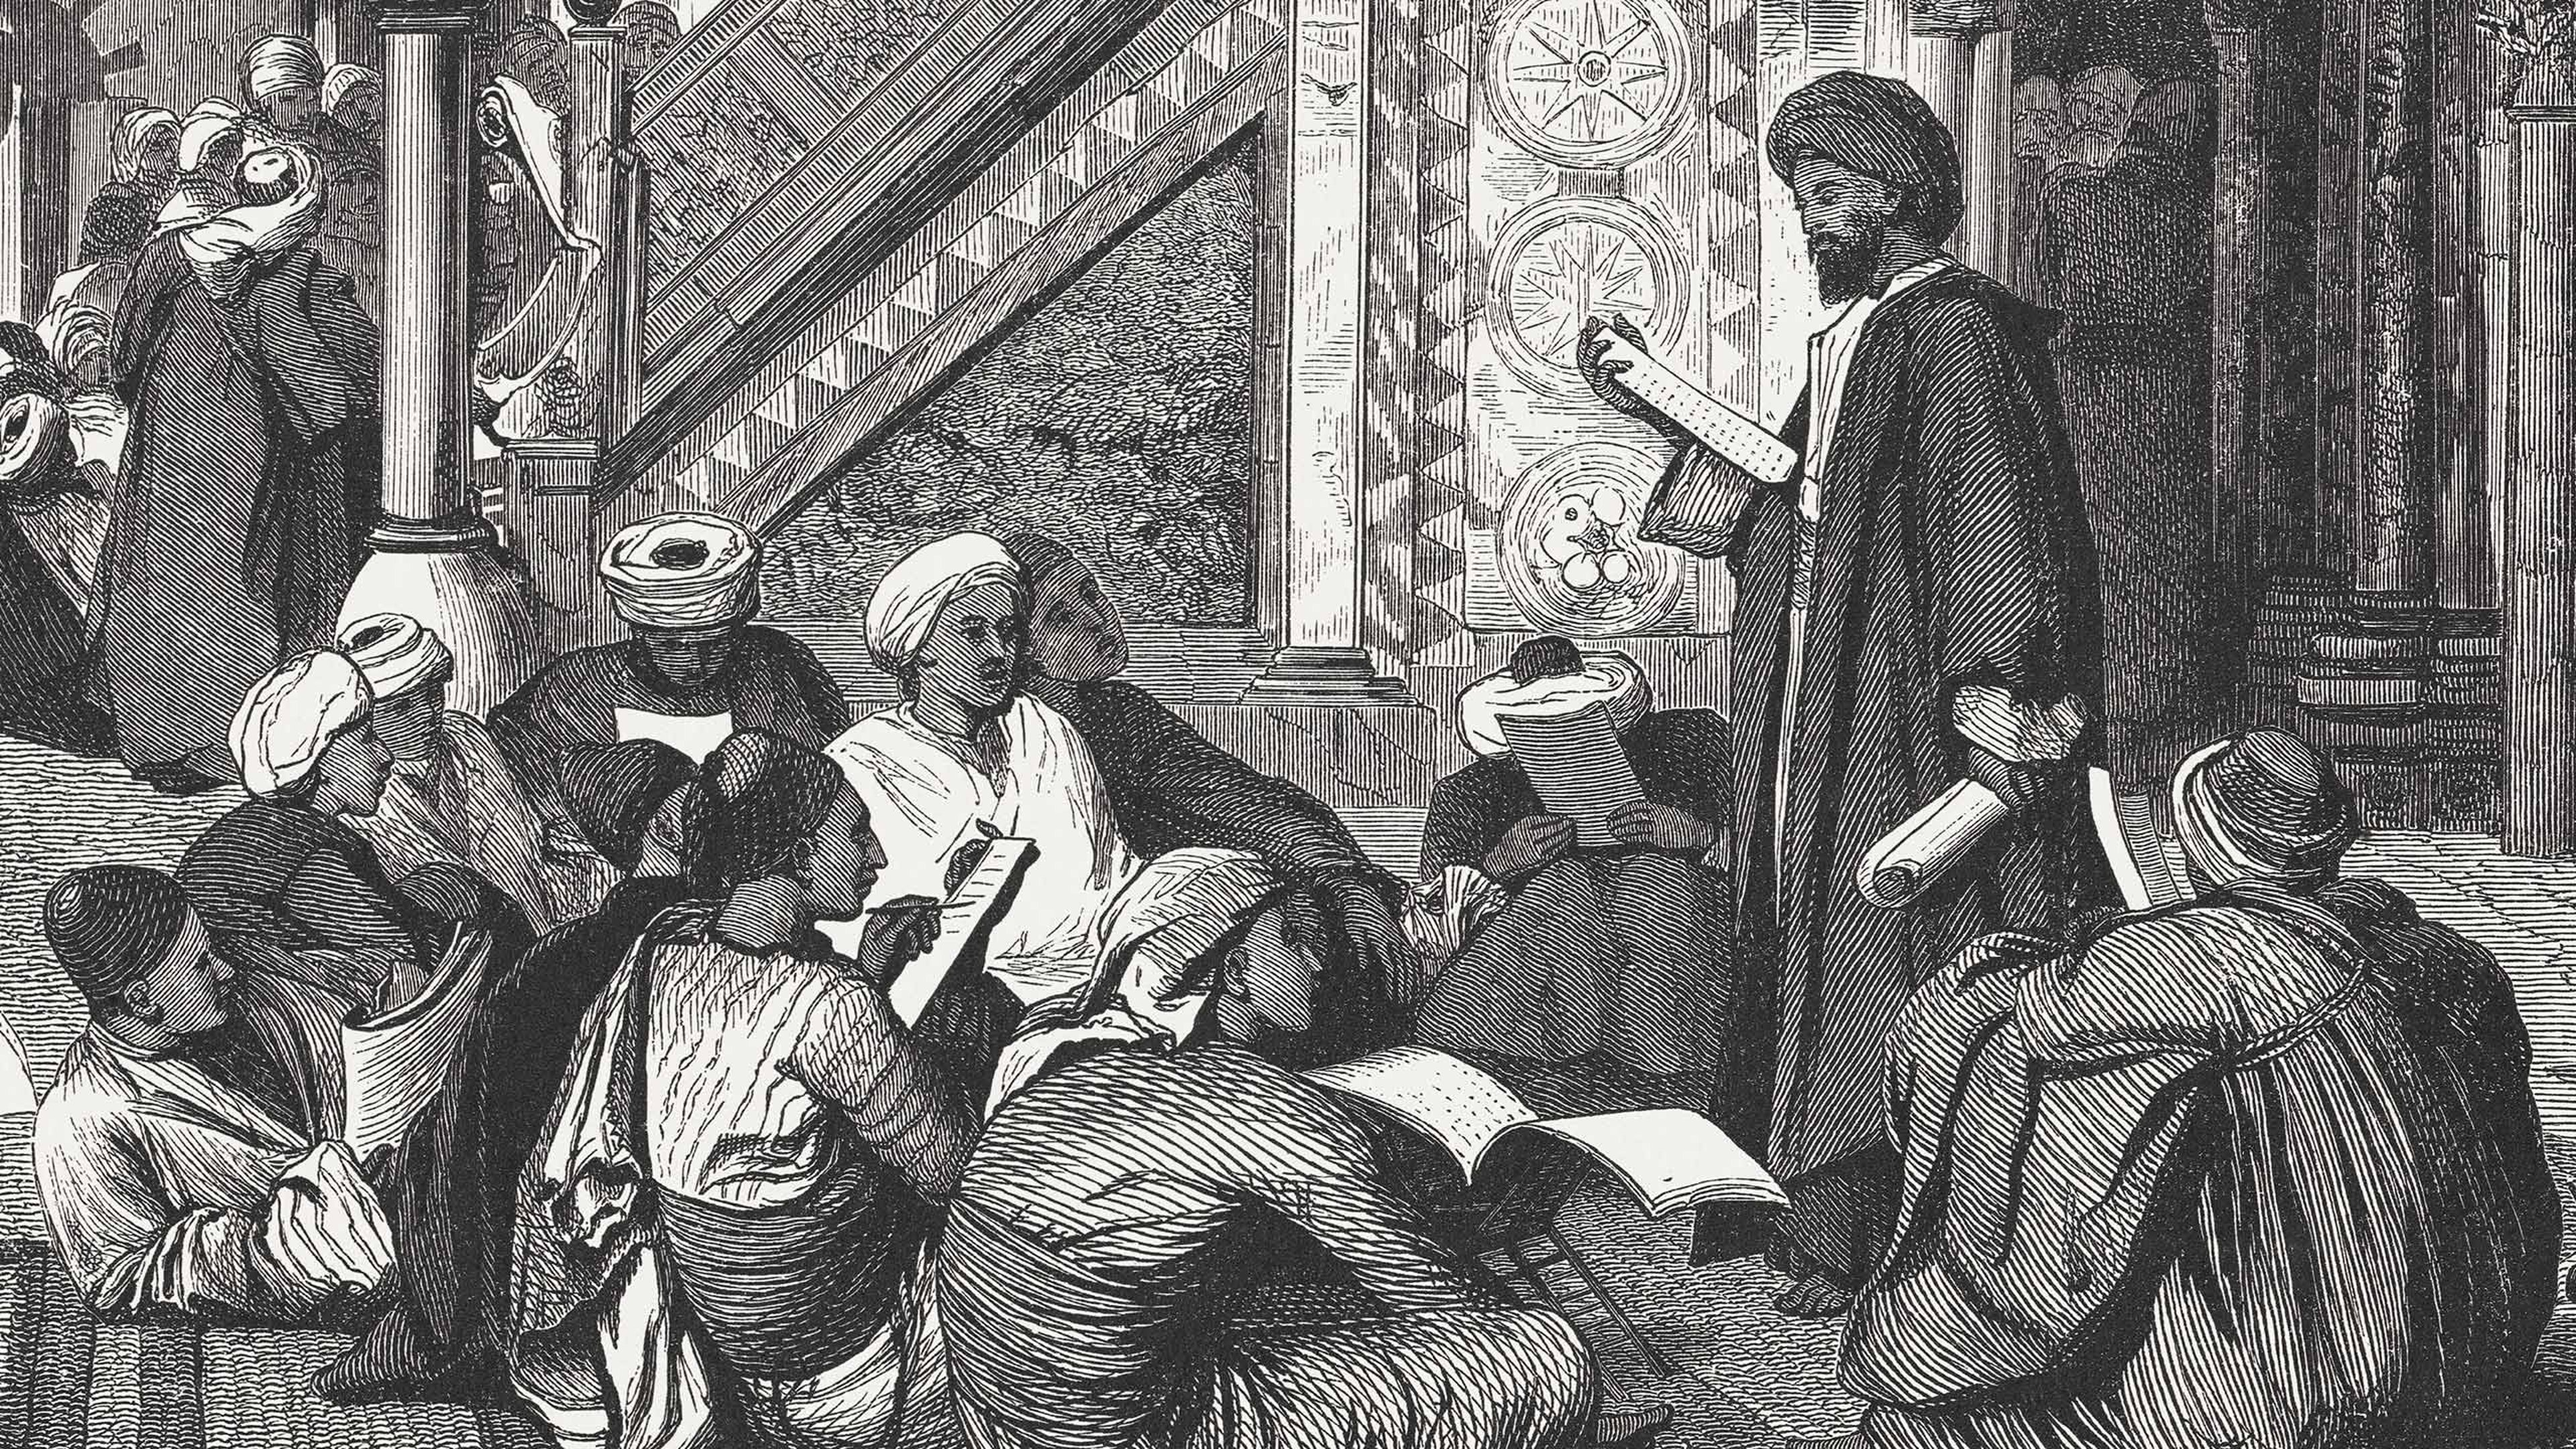 Featured article: Mawālī: How Freed Slaves and Non-Arabs Contributed to Islamic Scholarship